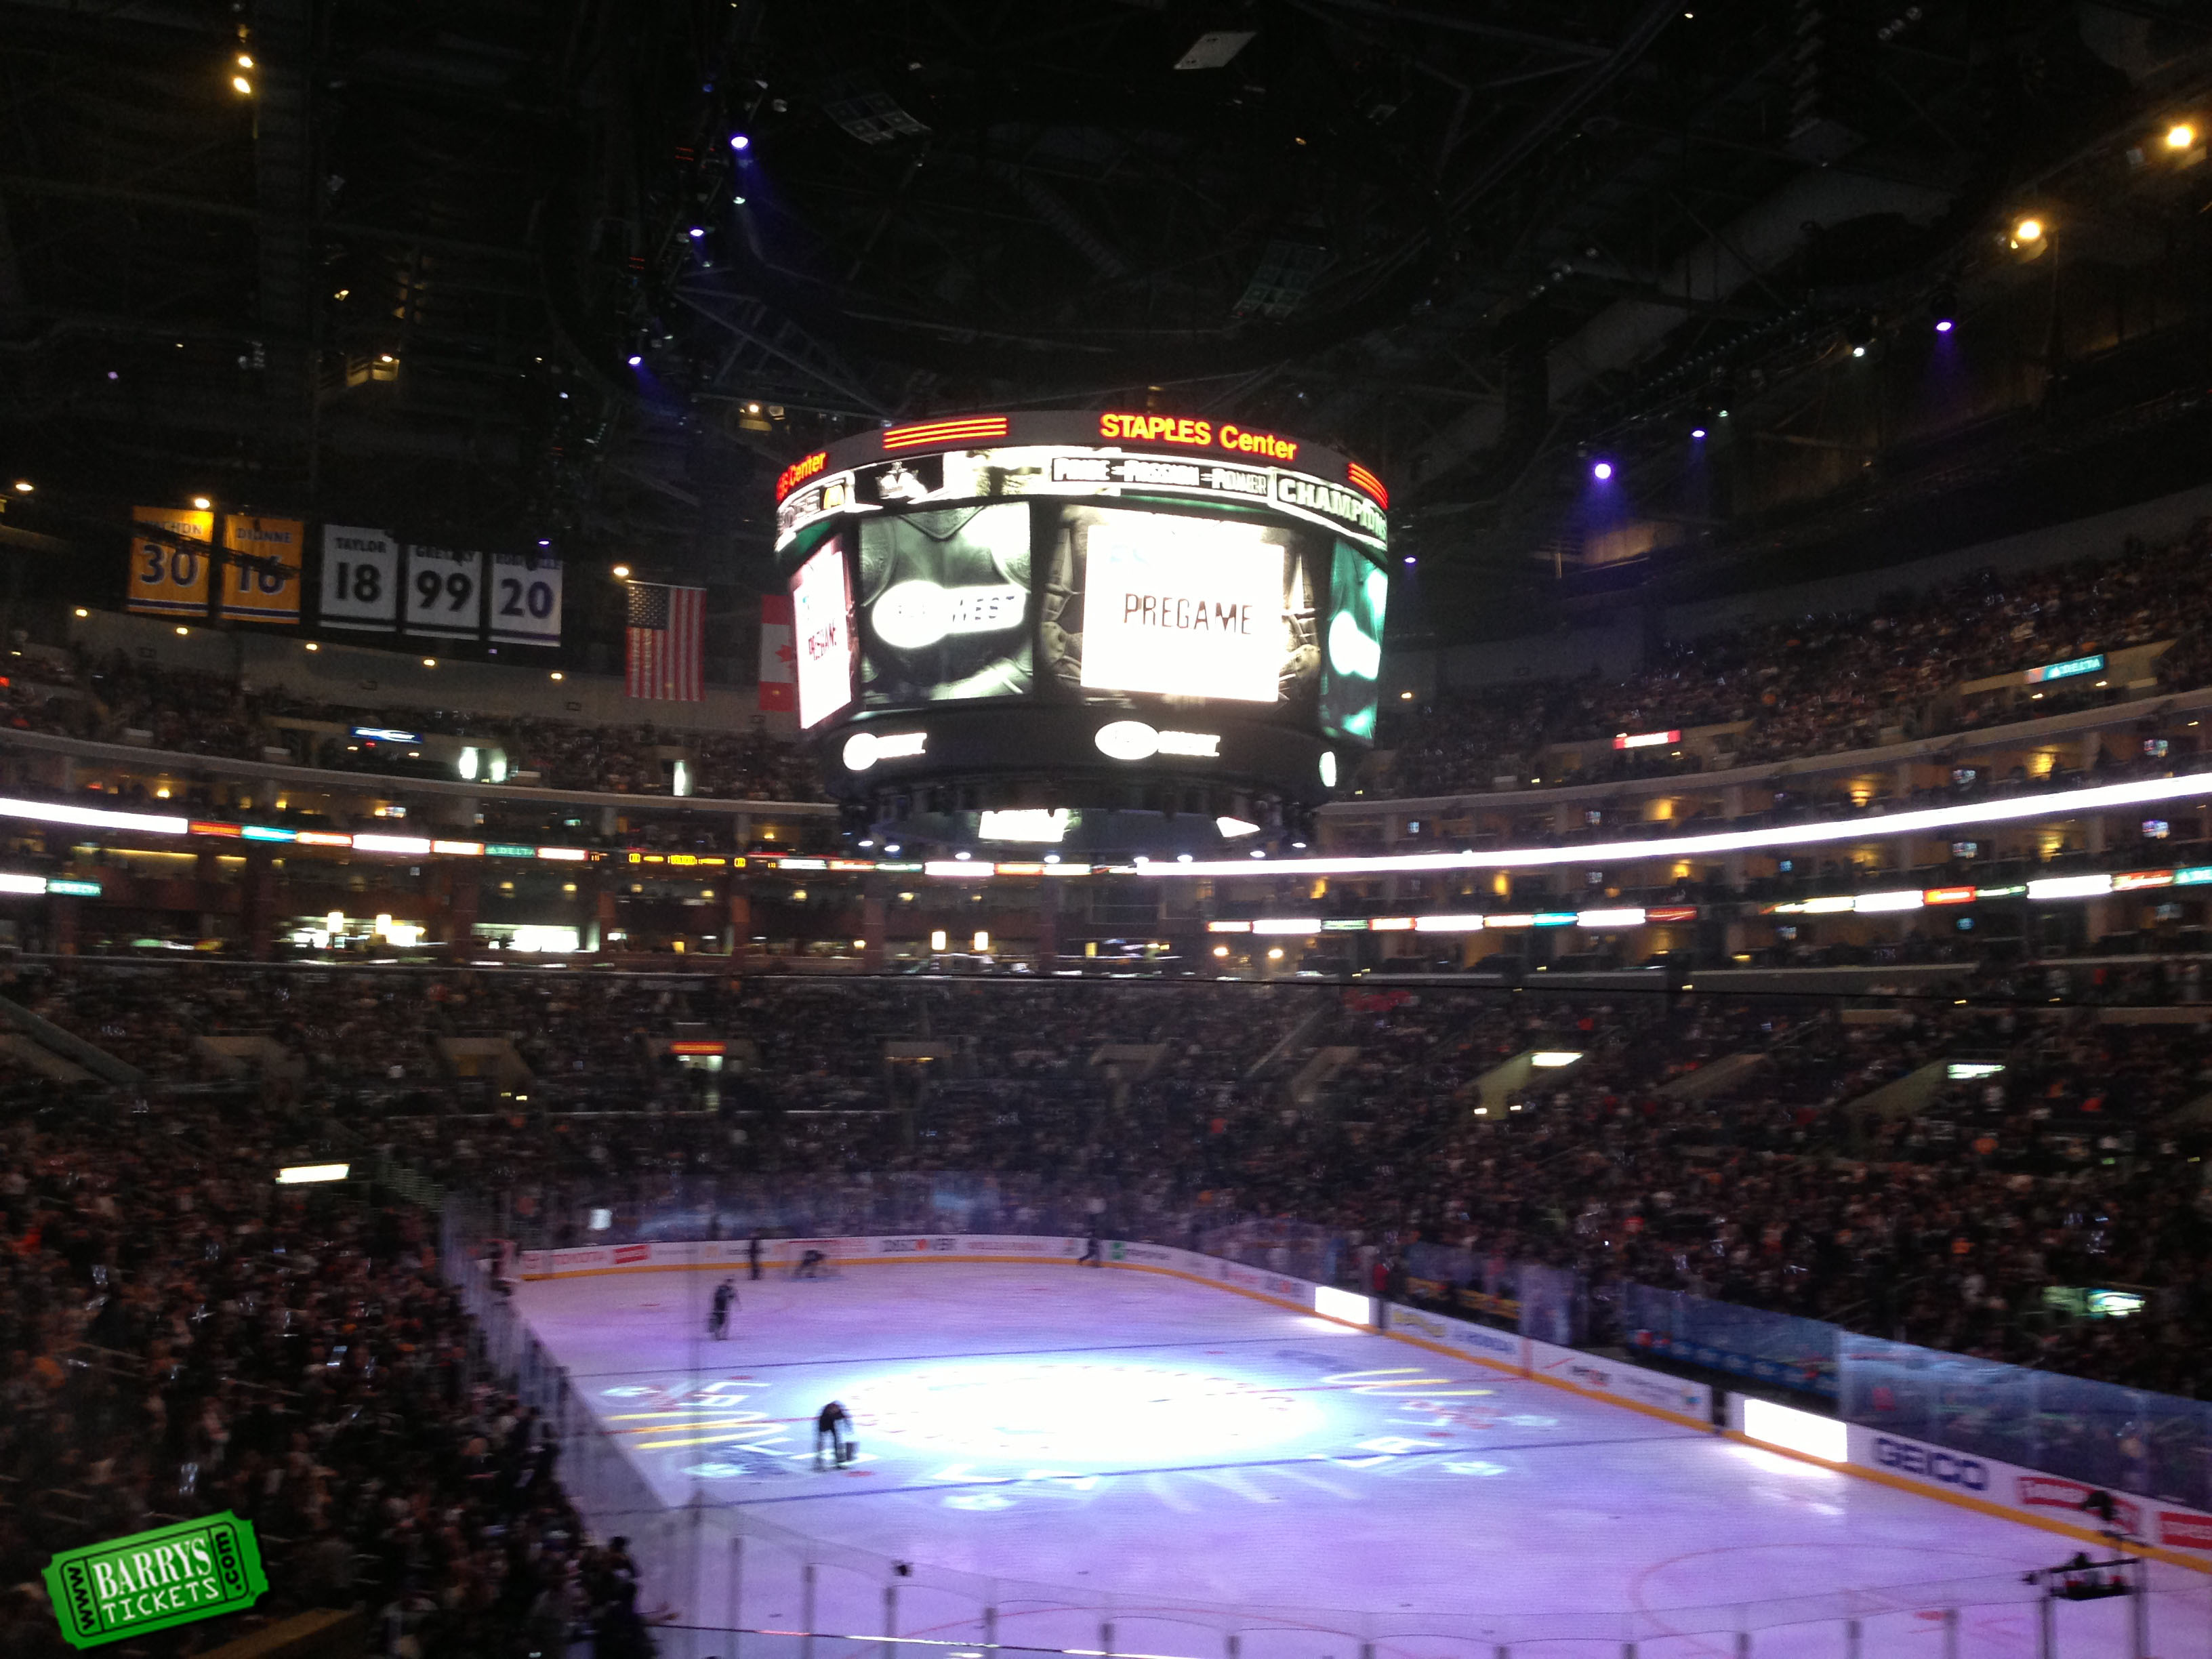 Fan Pictures From La Kings Game At Staples Center